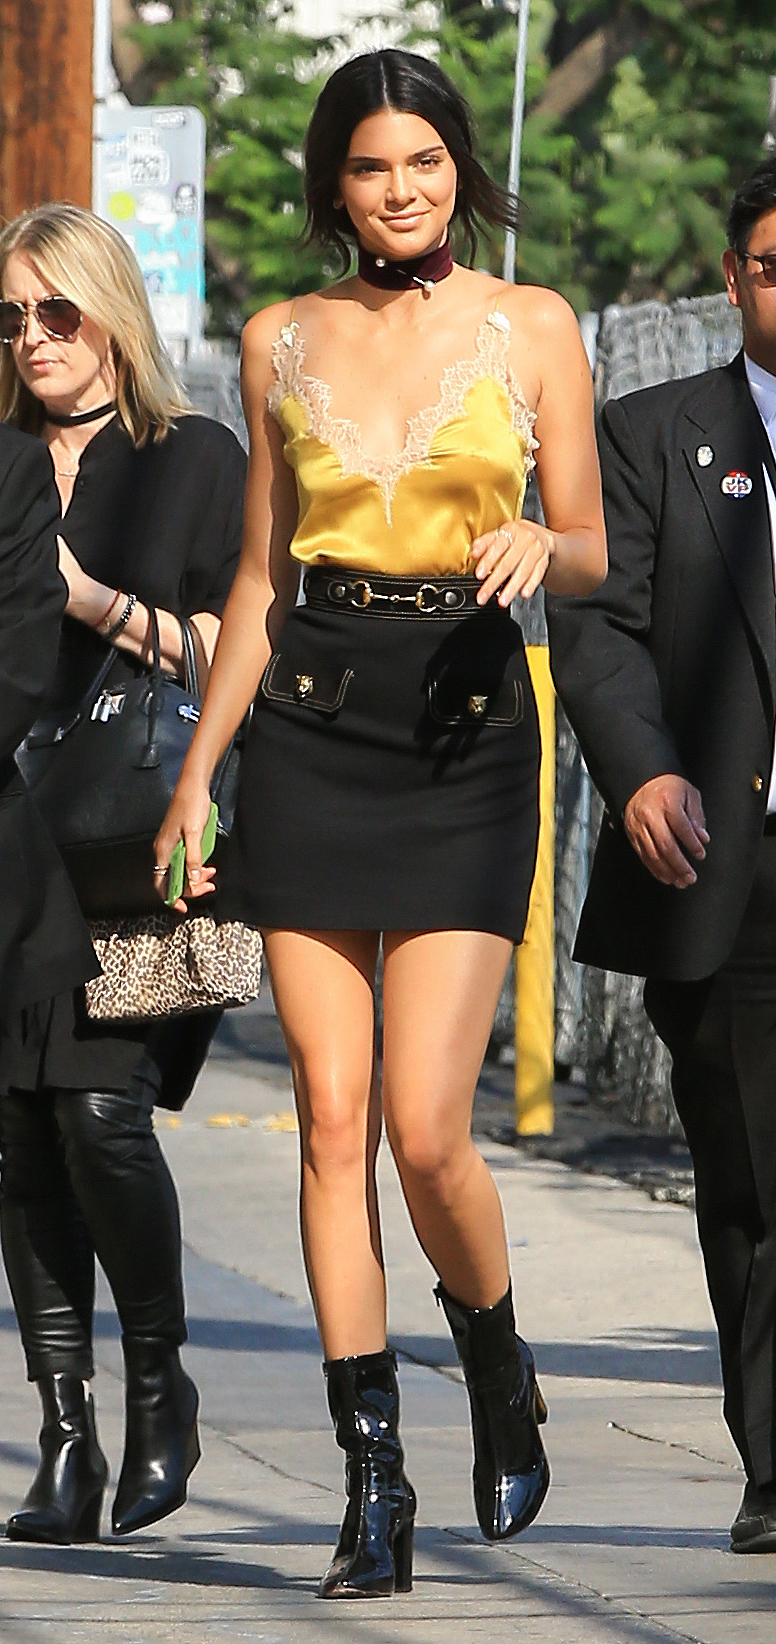 Kendall Jenner Looking Chic While Out In Los Angeles